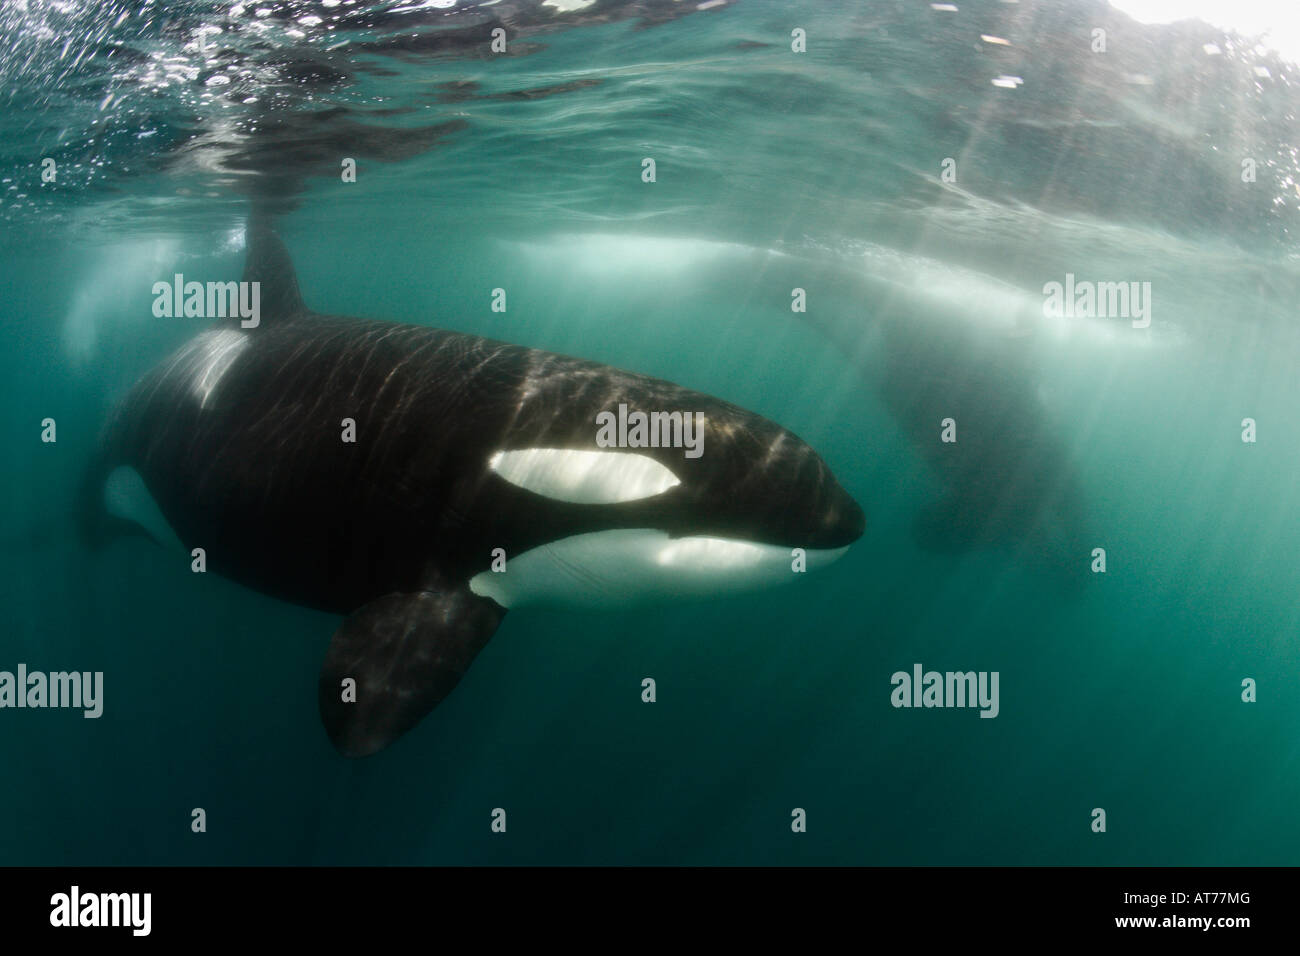 pt0004-D. Orca, Orcinus orca. Also called Killer Whale. Transient race. California, Pacific Ocean. Photo Copyright - Stock Image